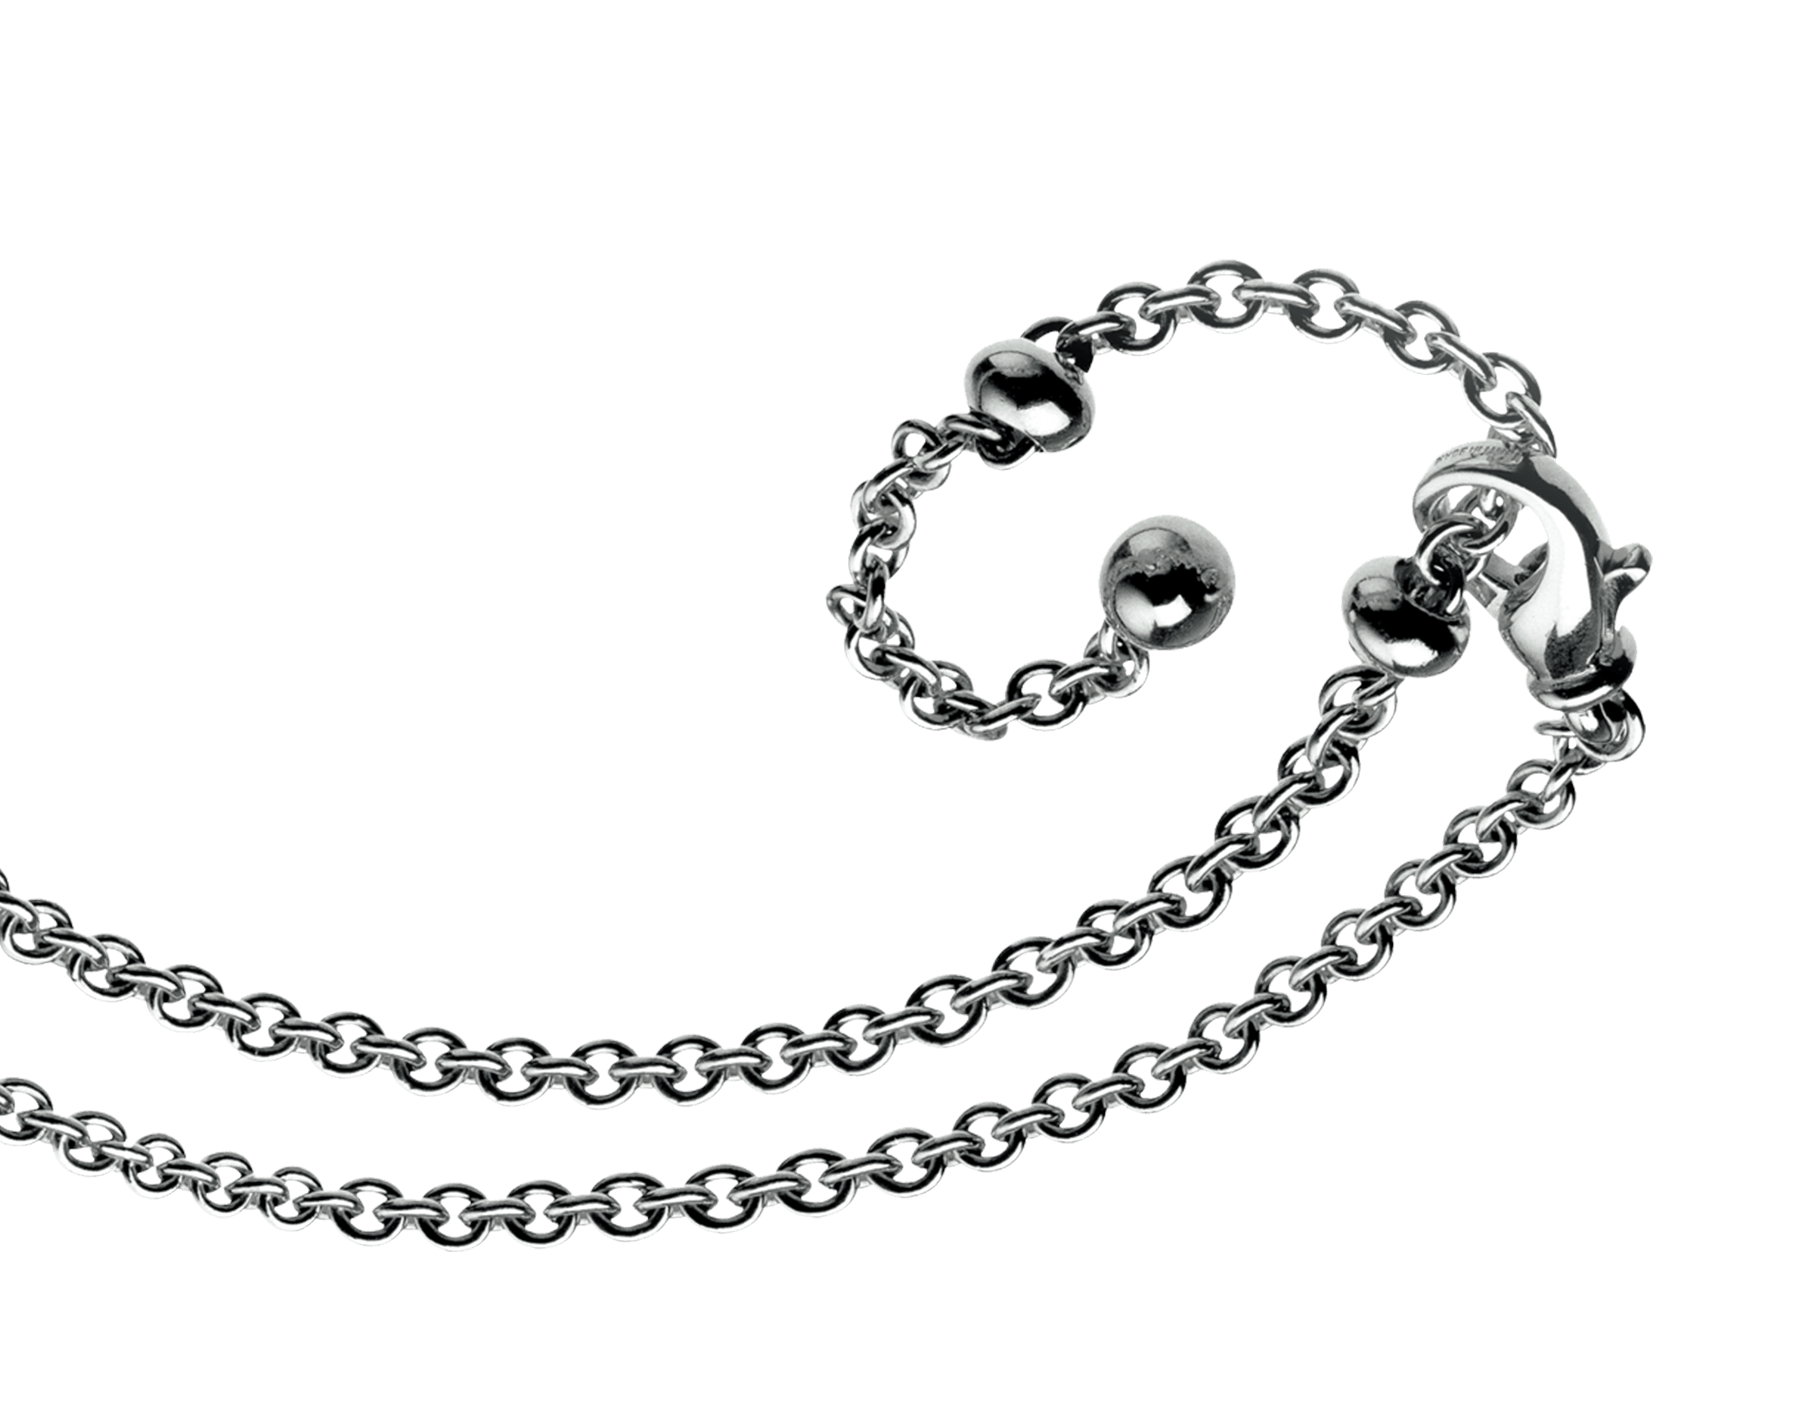 Catene chain in 18 kt white gold 335073 image 2